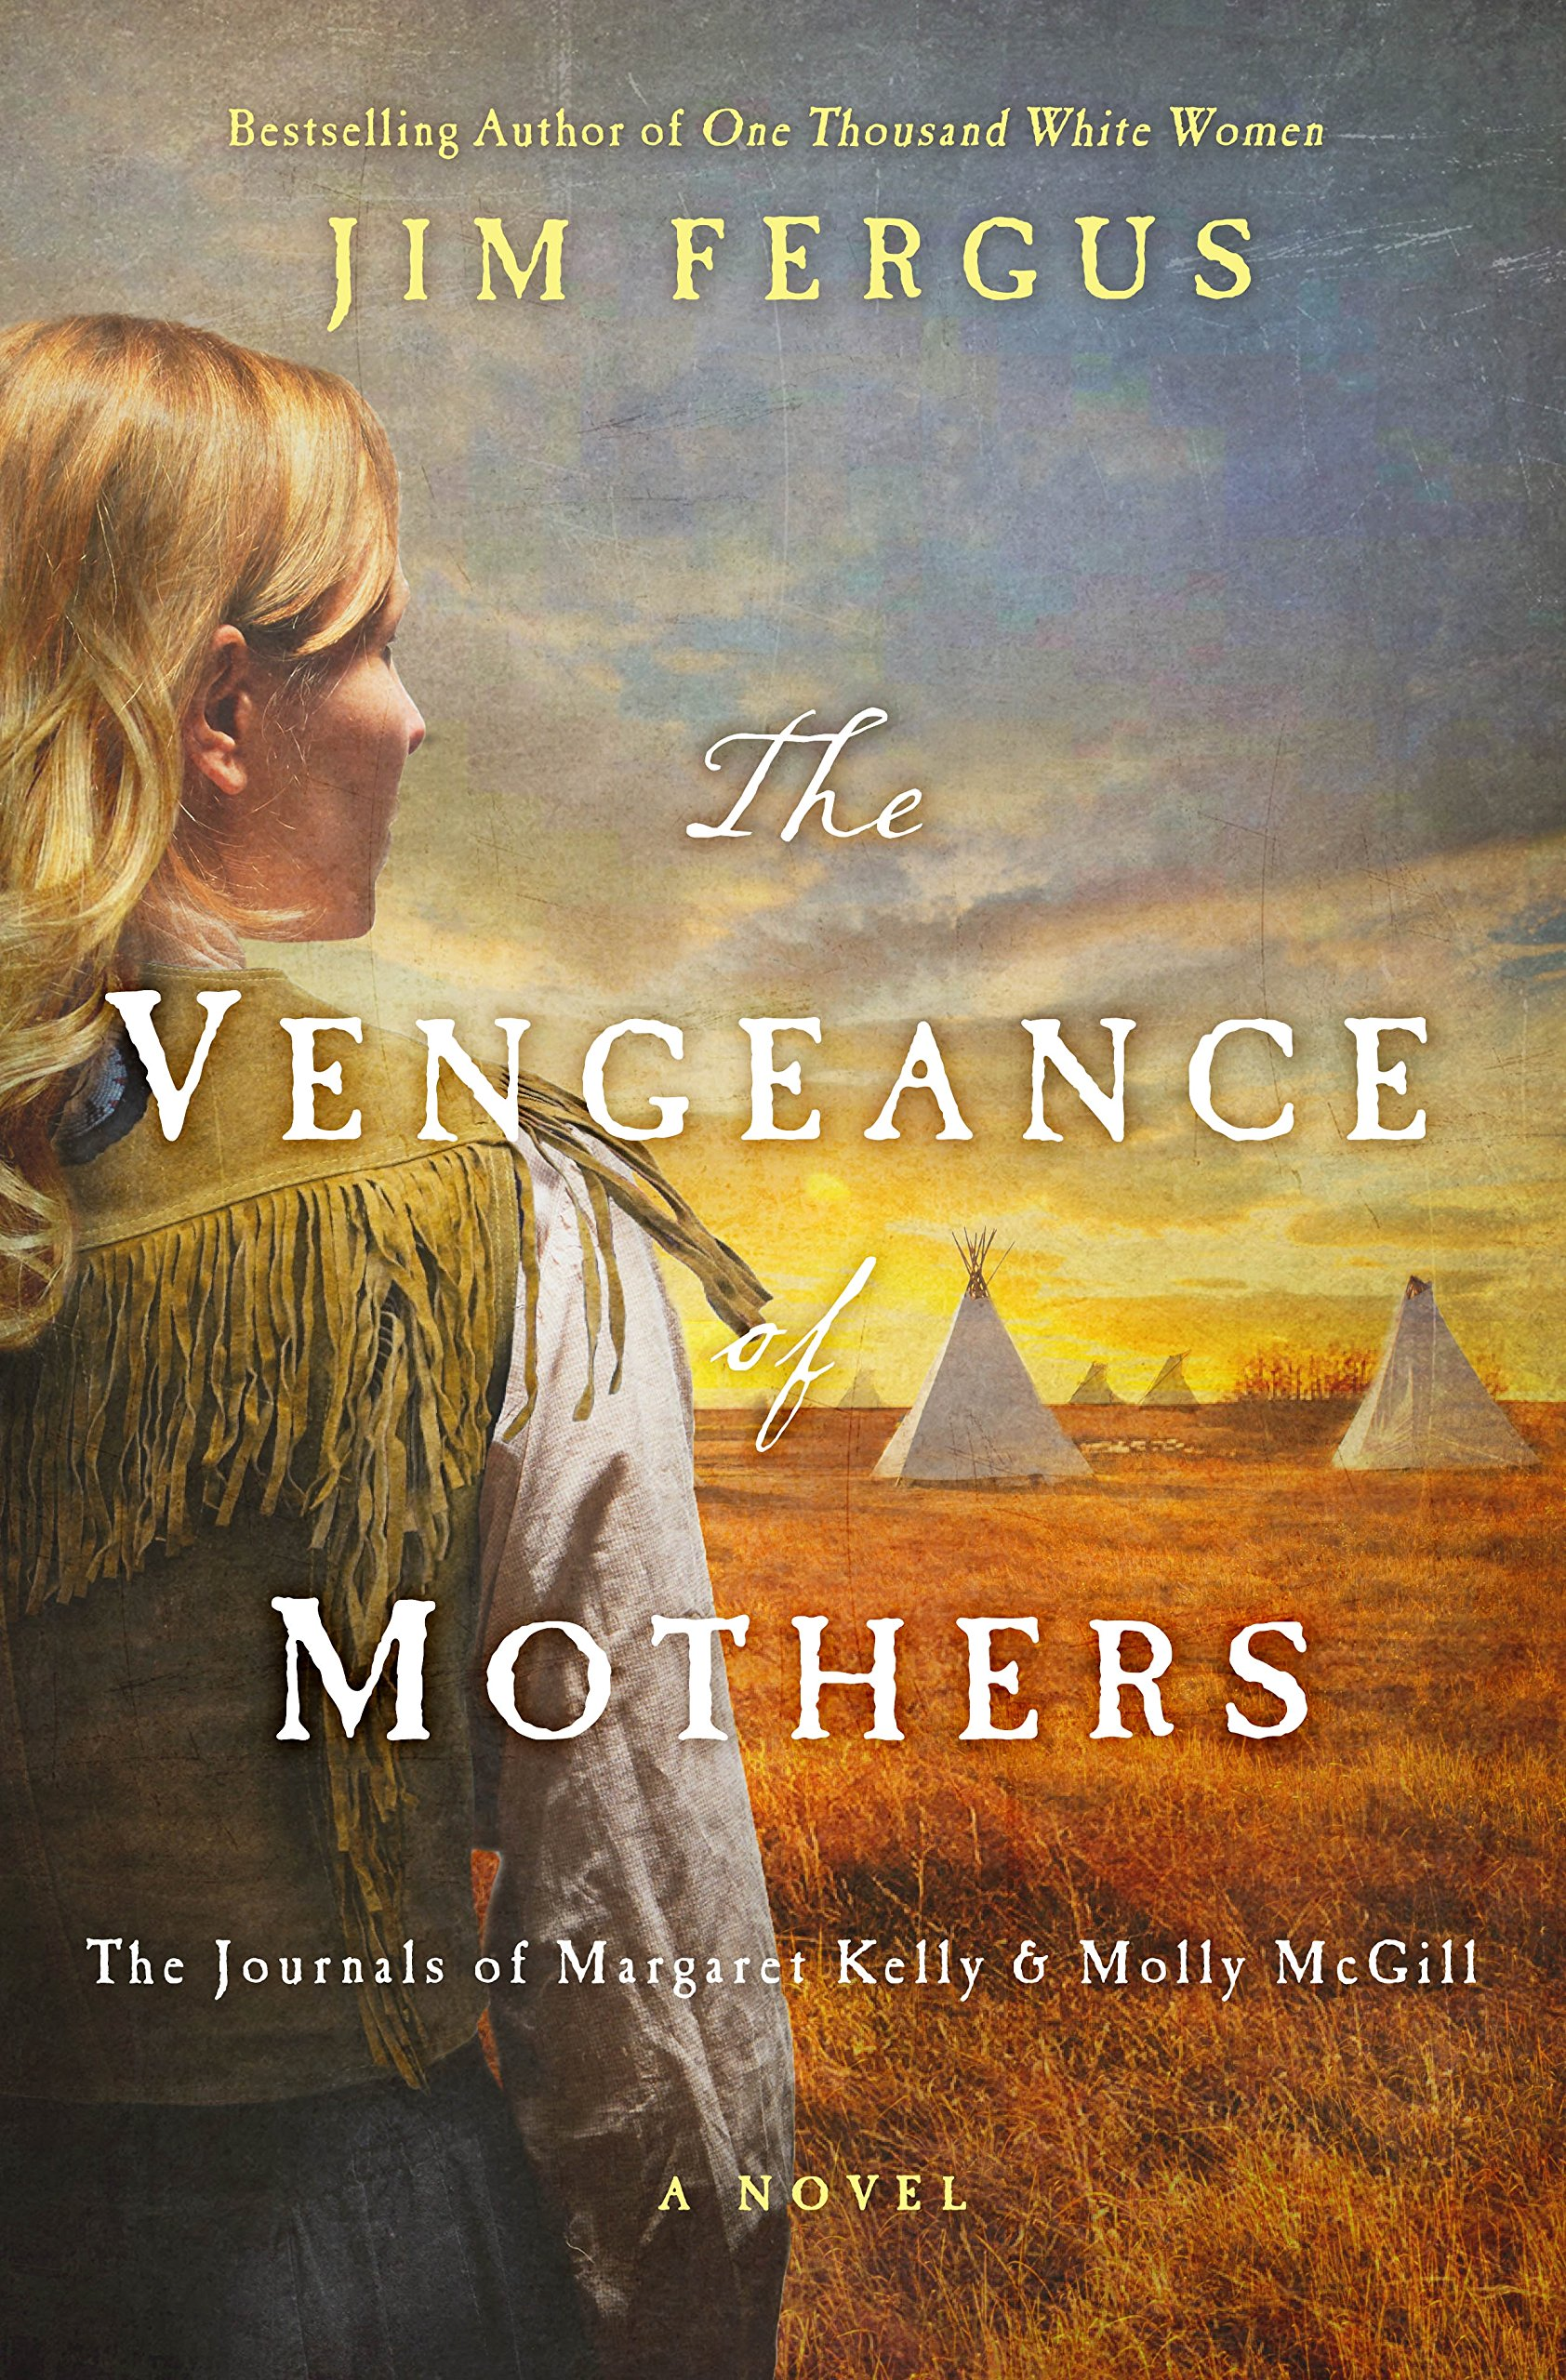 Read Online The Vengeance of Mothers: The Journals of Margaret Kelly & Molly McGill: A Novel (One Thousand White Women Series) pdf